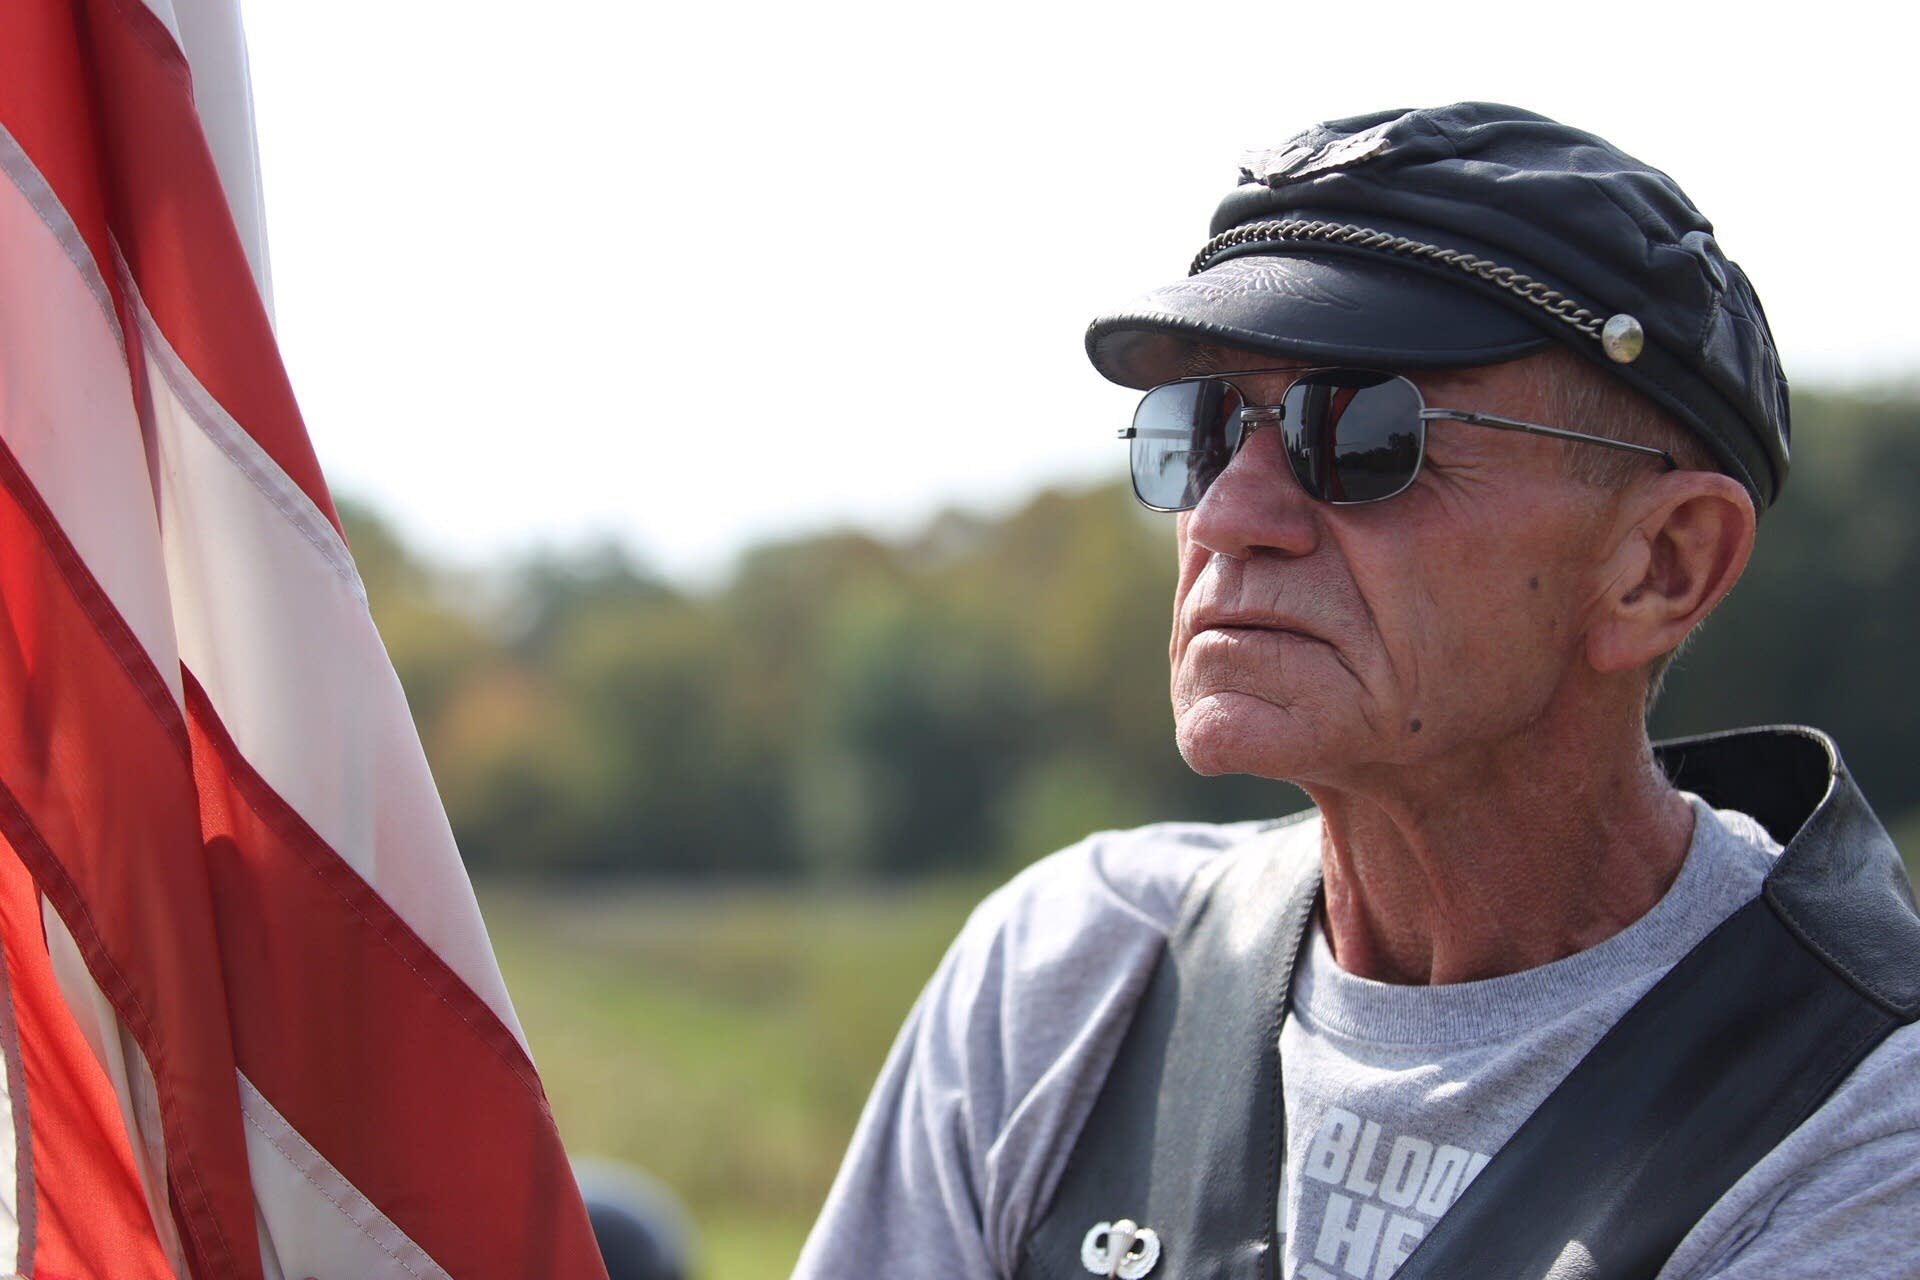 Chester Gould, 73, has been a member of the Minn. Patriot Guard since 2006.